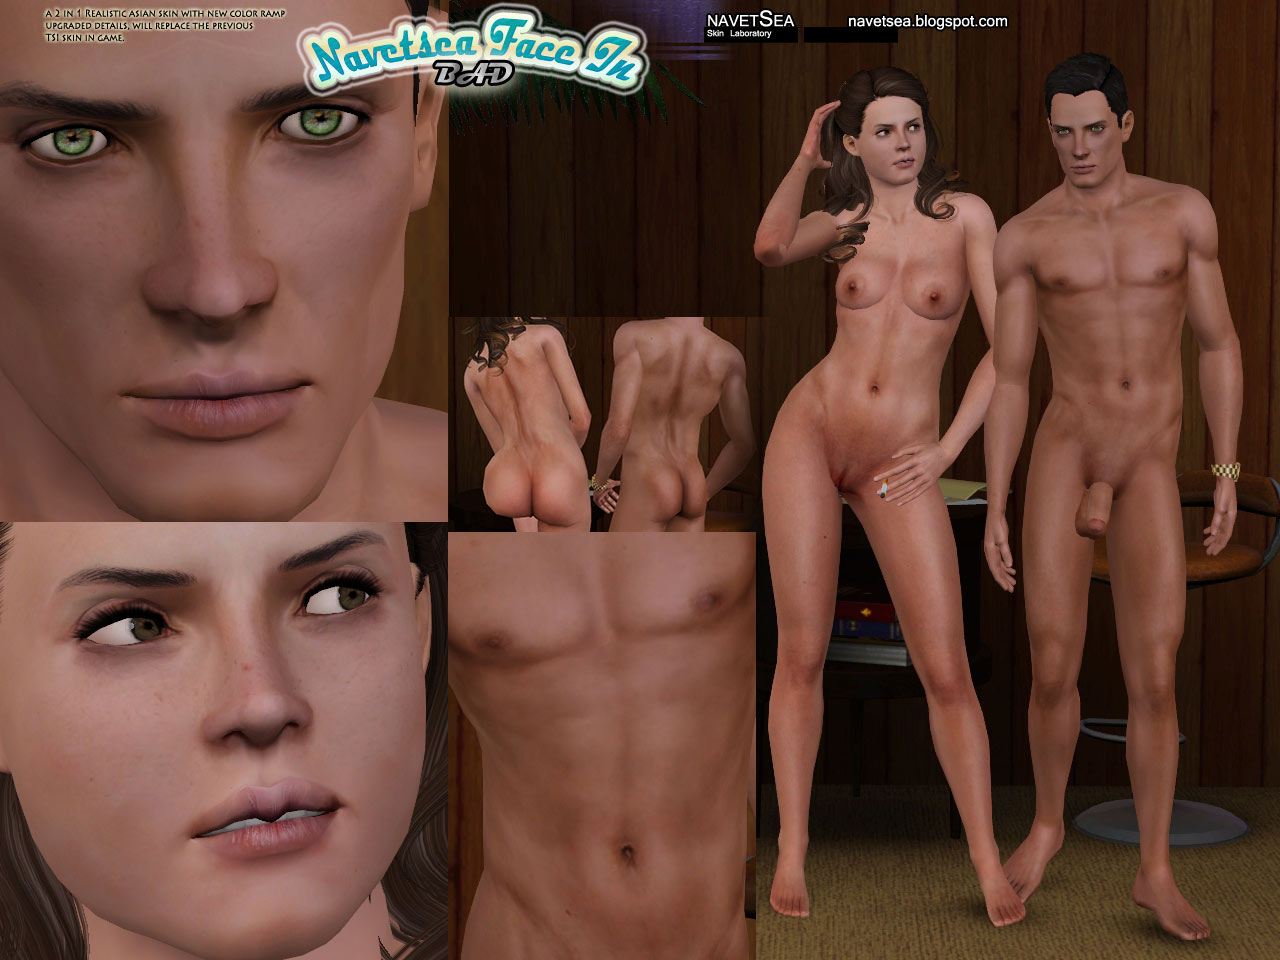 The sims 2 nude skins download sexy gallery